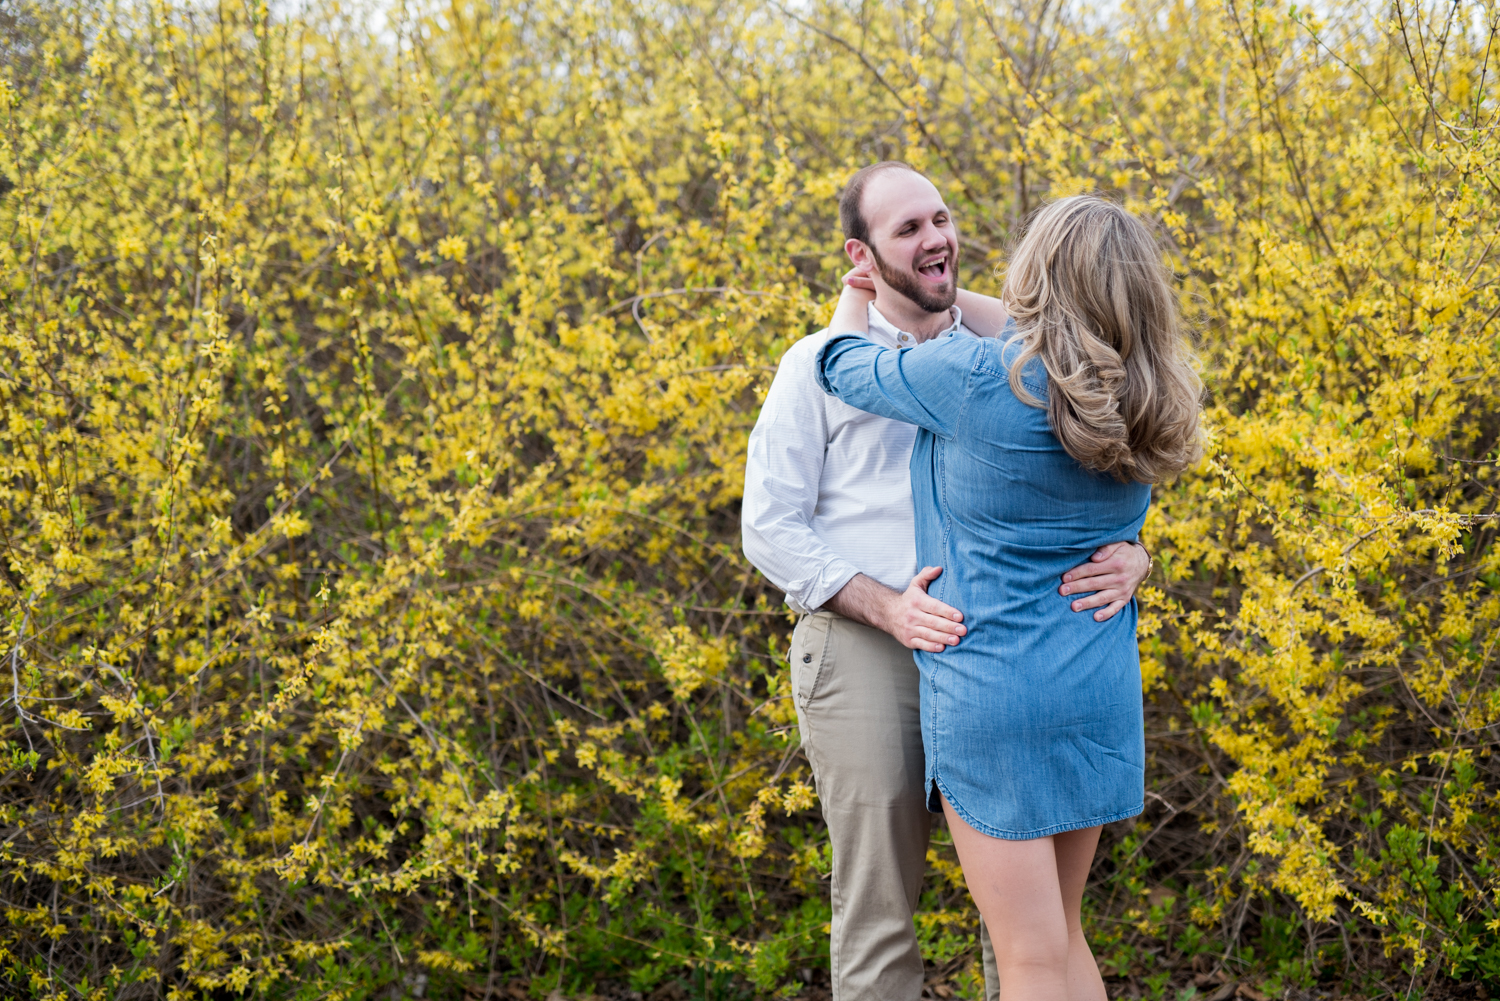 Matt+Melissa- Meadowlands Environmental Center Engagement Session- New Jersey- Olivia Christina Photo-11.JPG